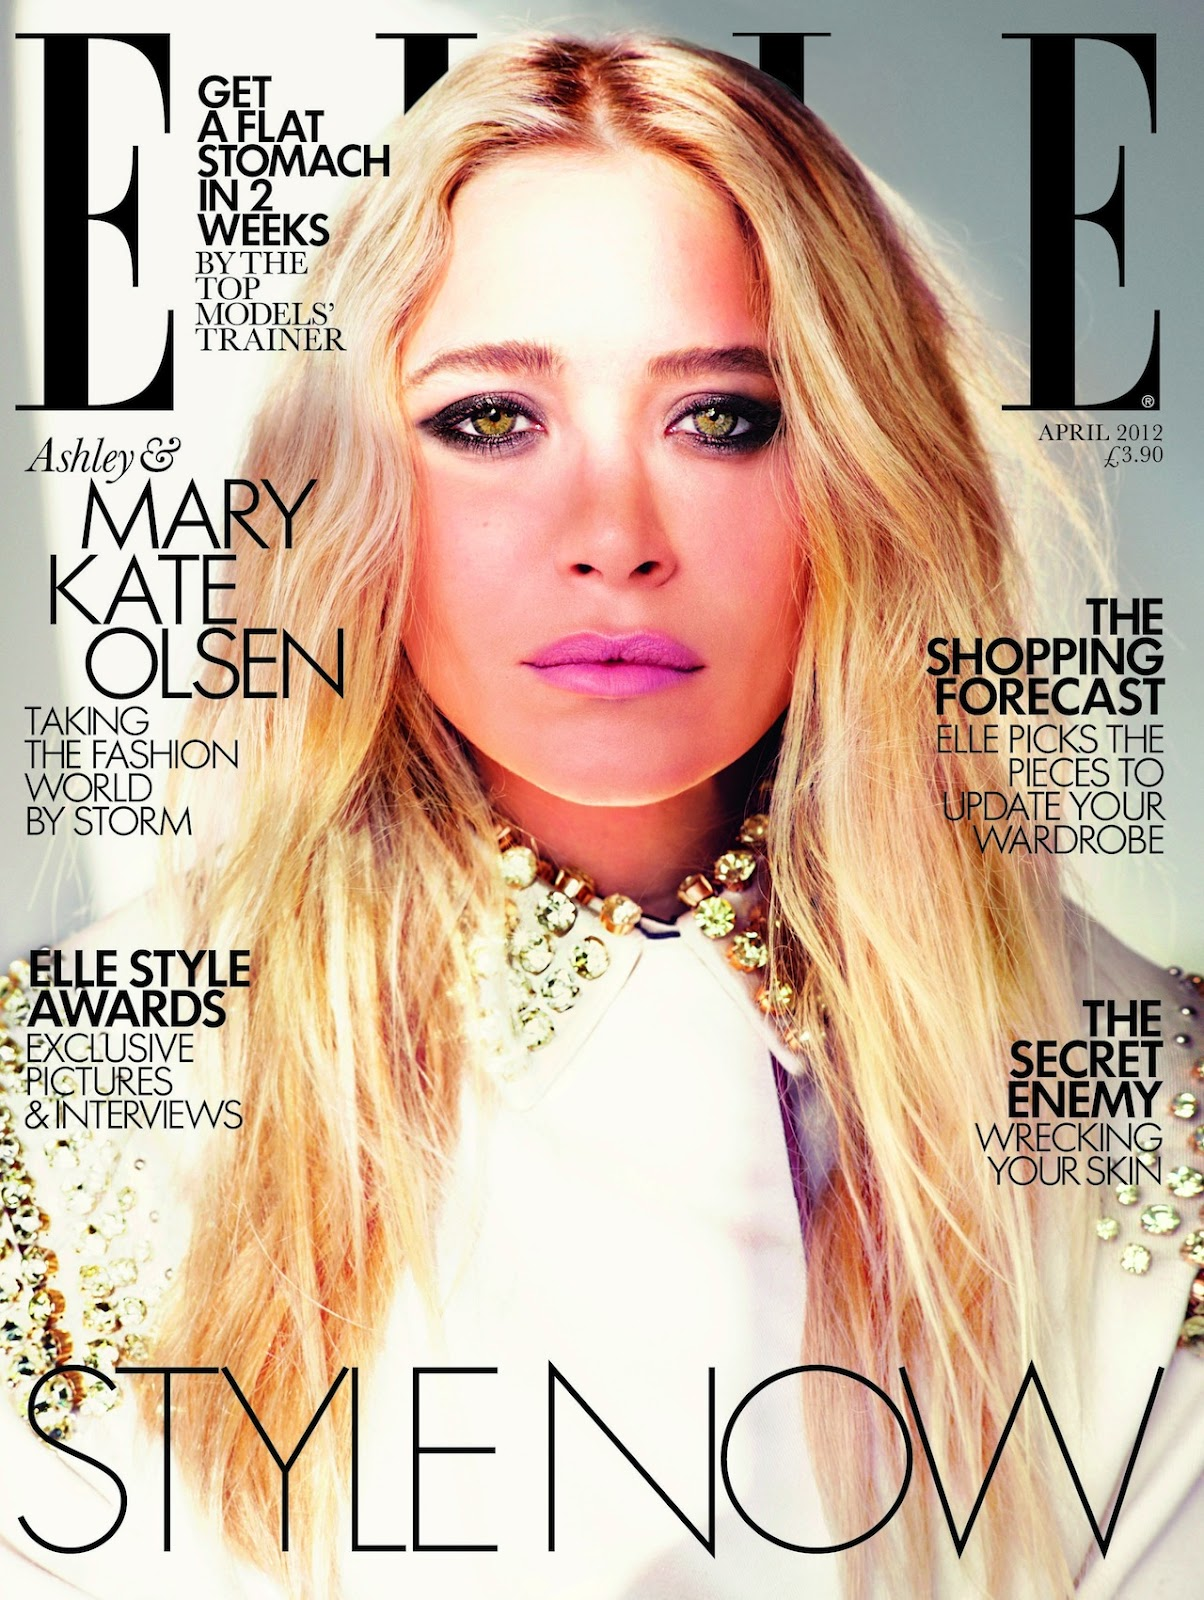 http://3.bp.blogspot.com/-l2GgYorfL54/T2mFVrfyFtI/AAAAAAABTh8/ygeuF_5ODCI/s1600/marykateolsen.jpg